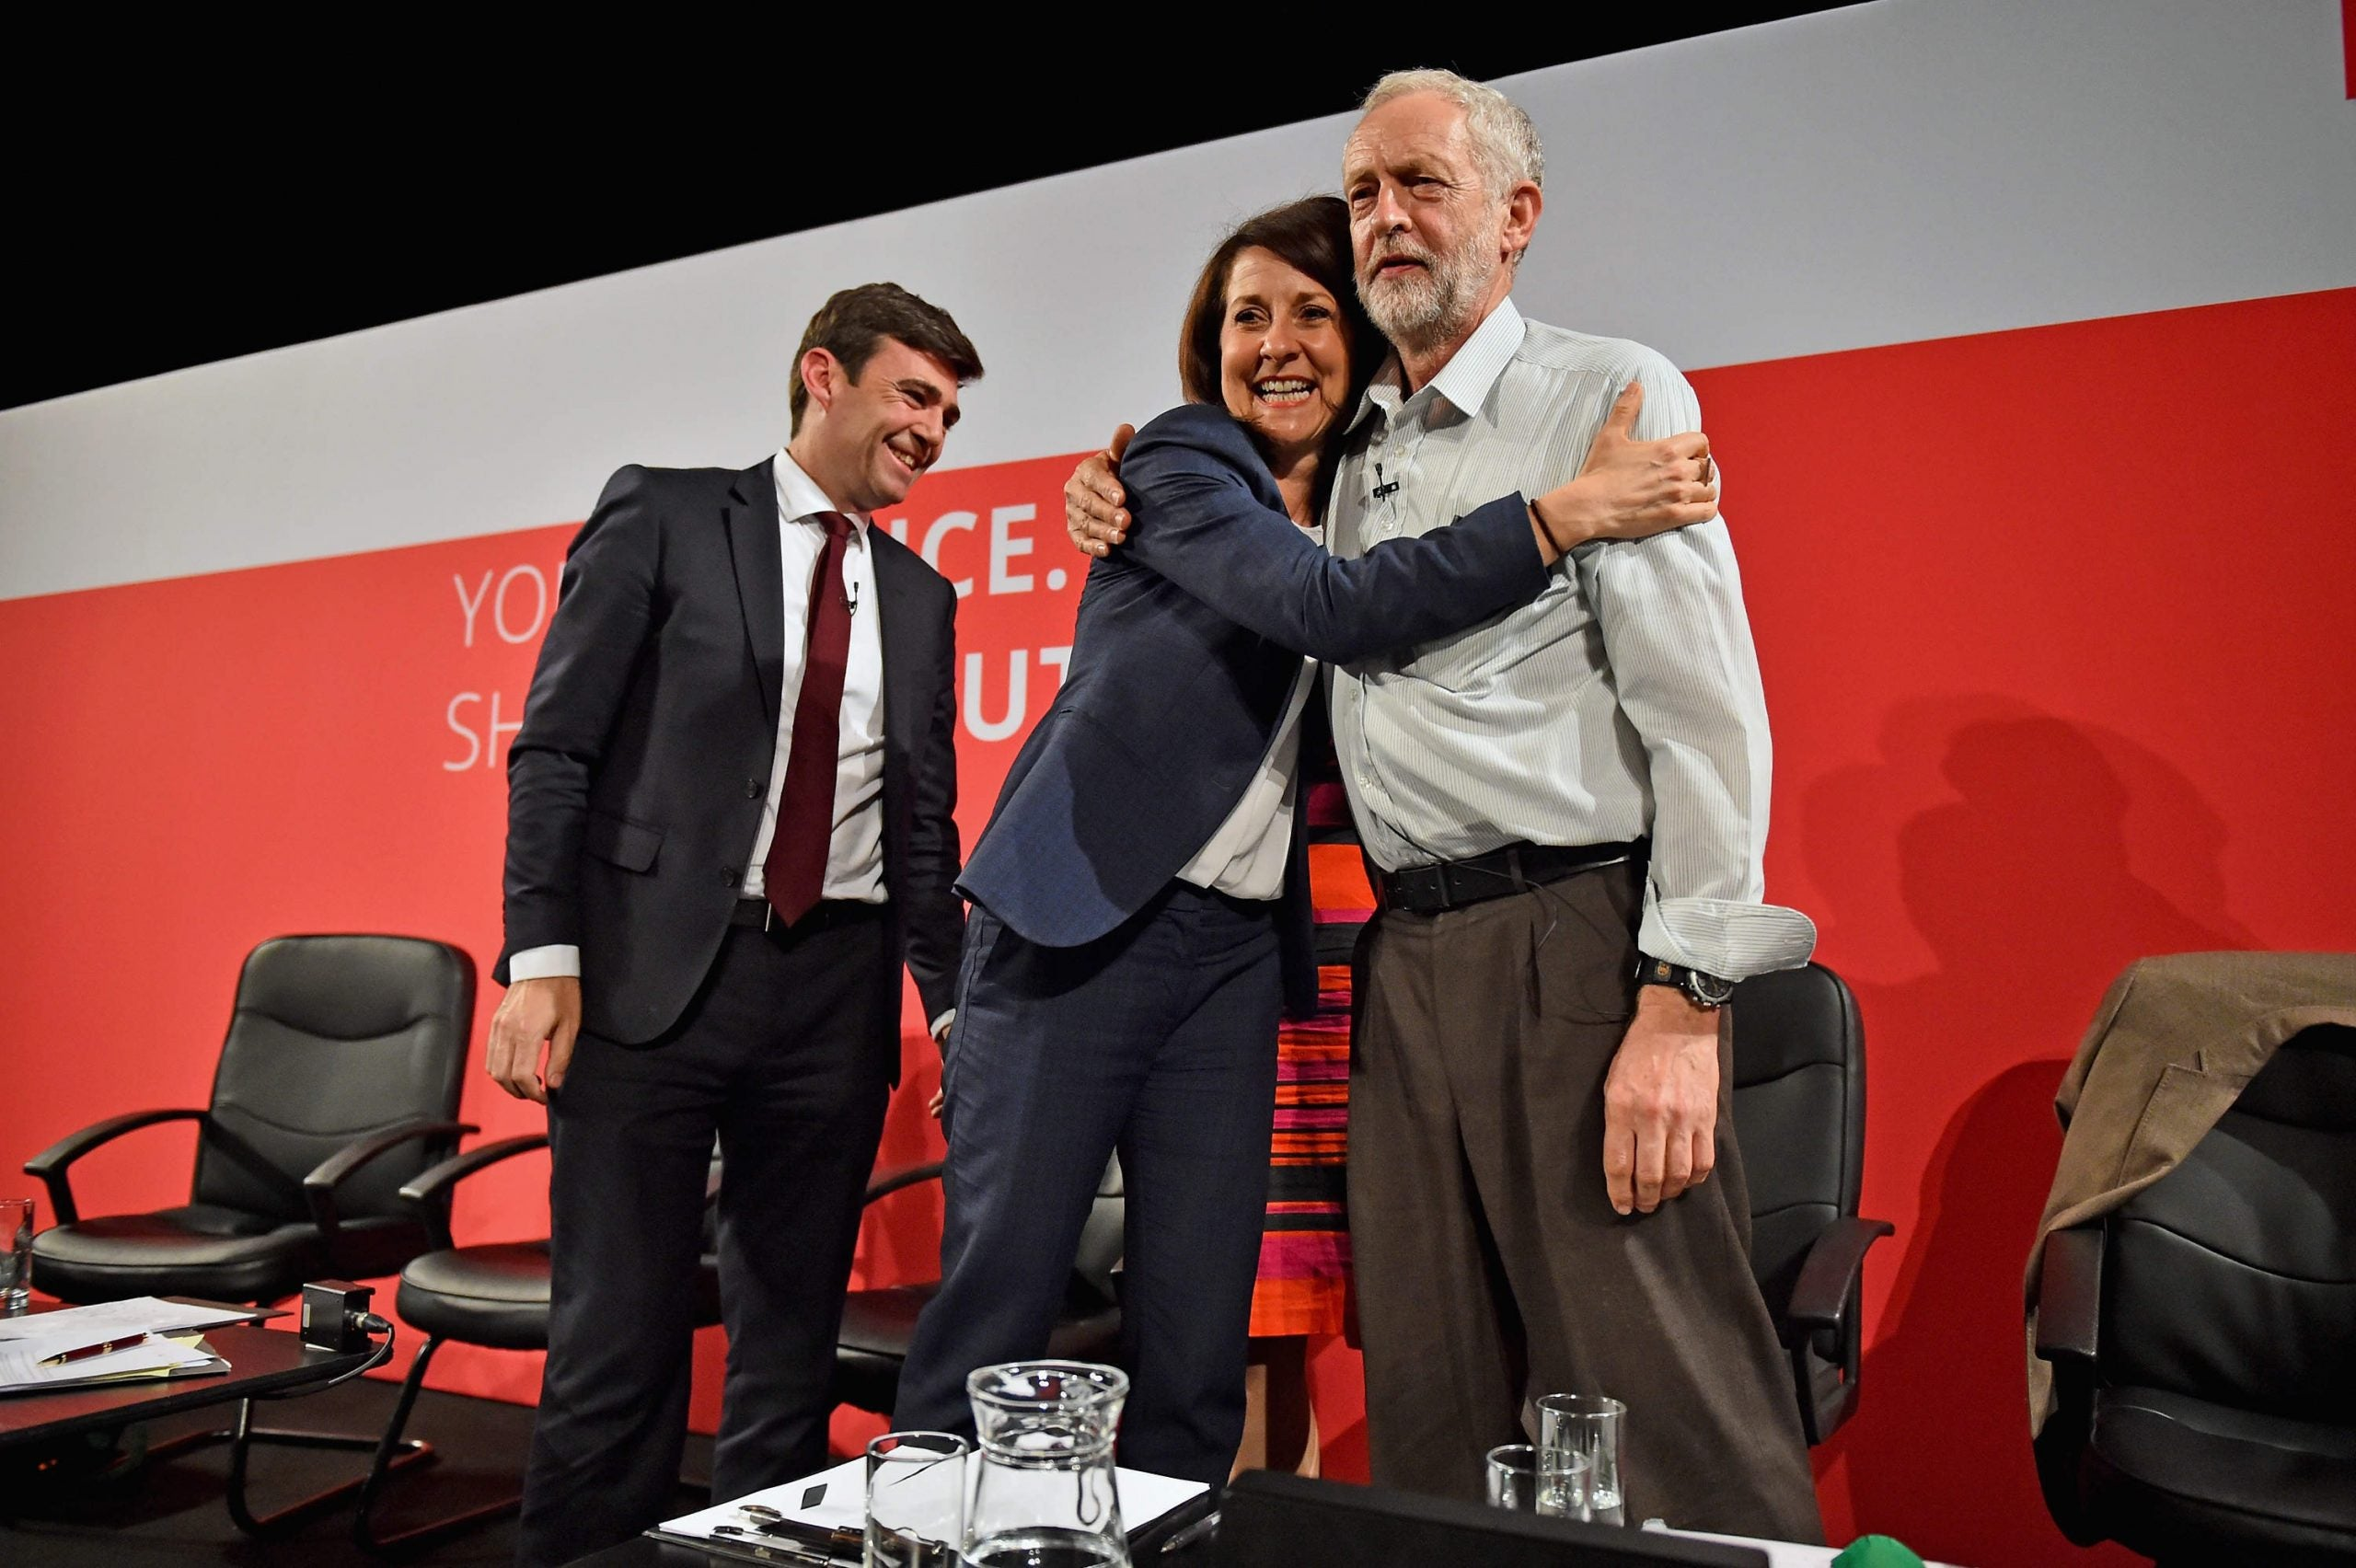 Jeremy Corbyn is good for politics - even if he loses in 2020